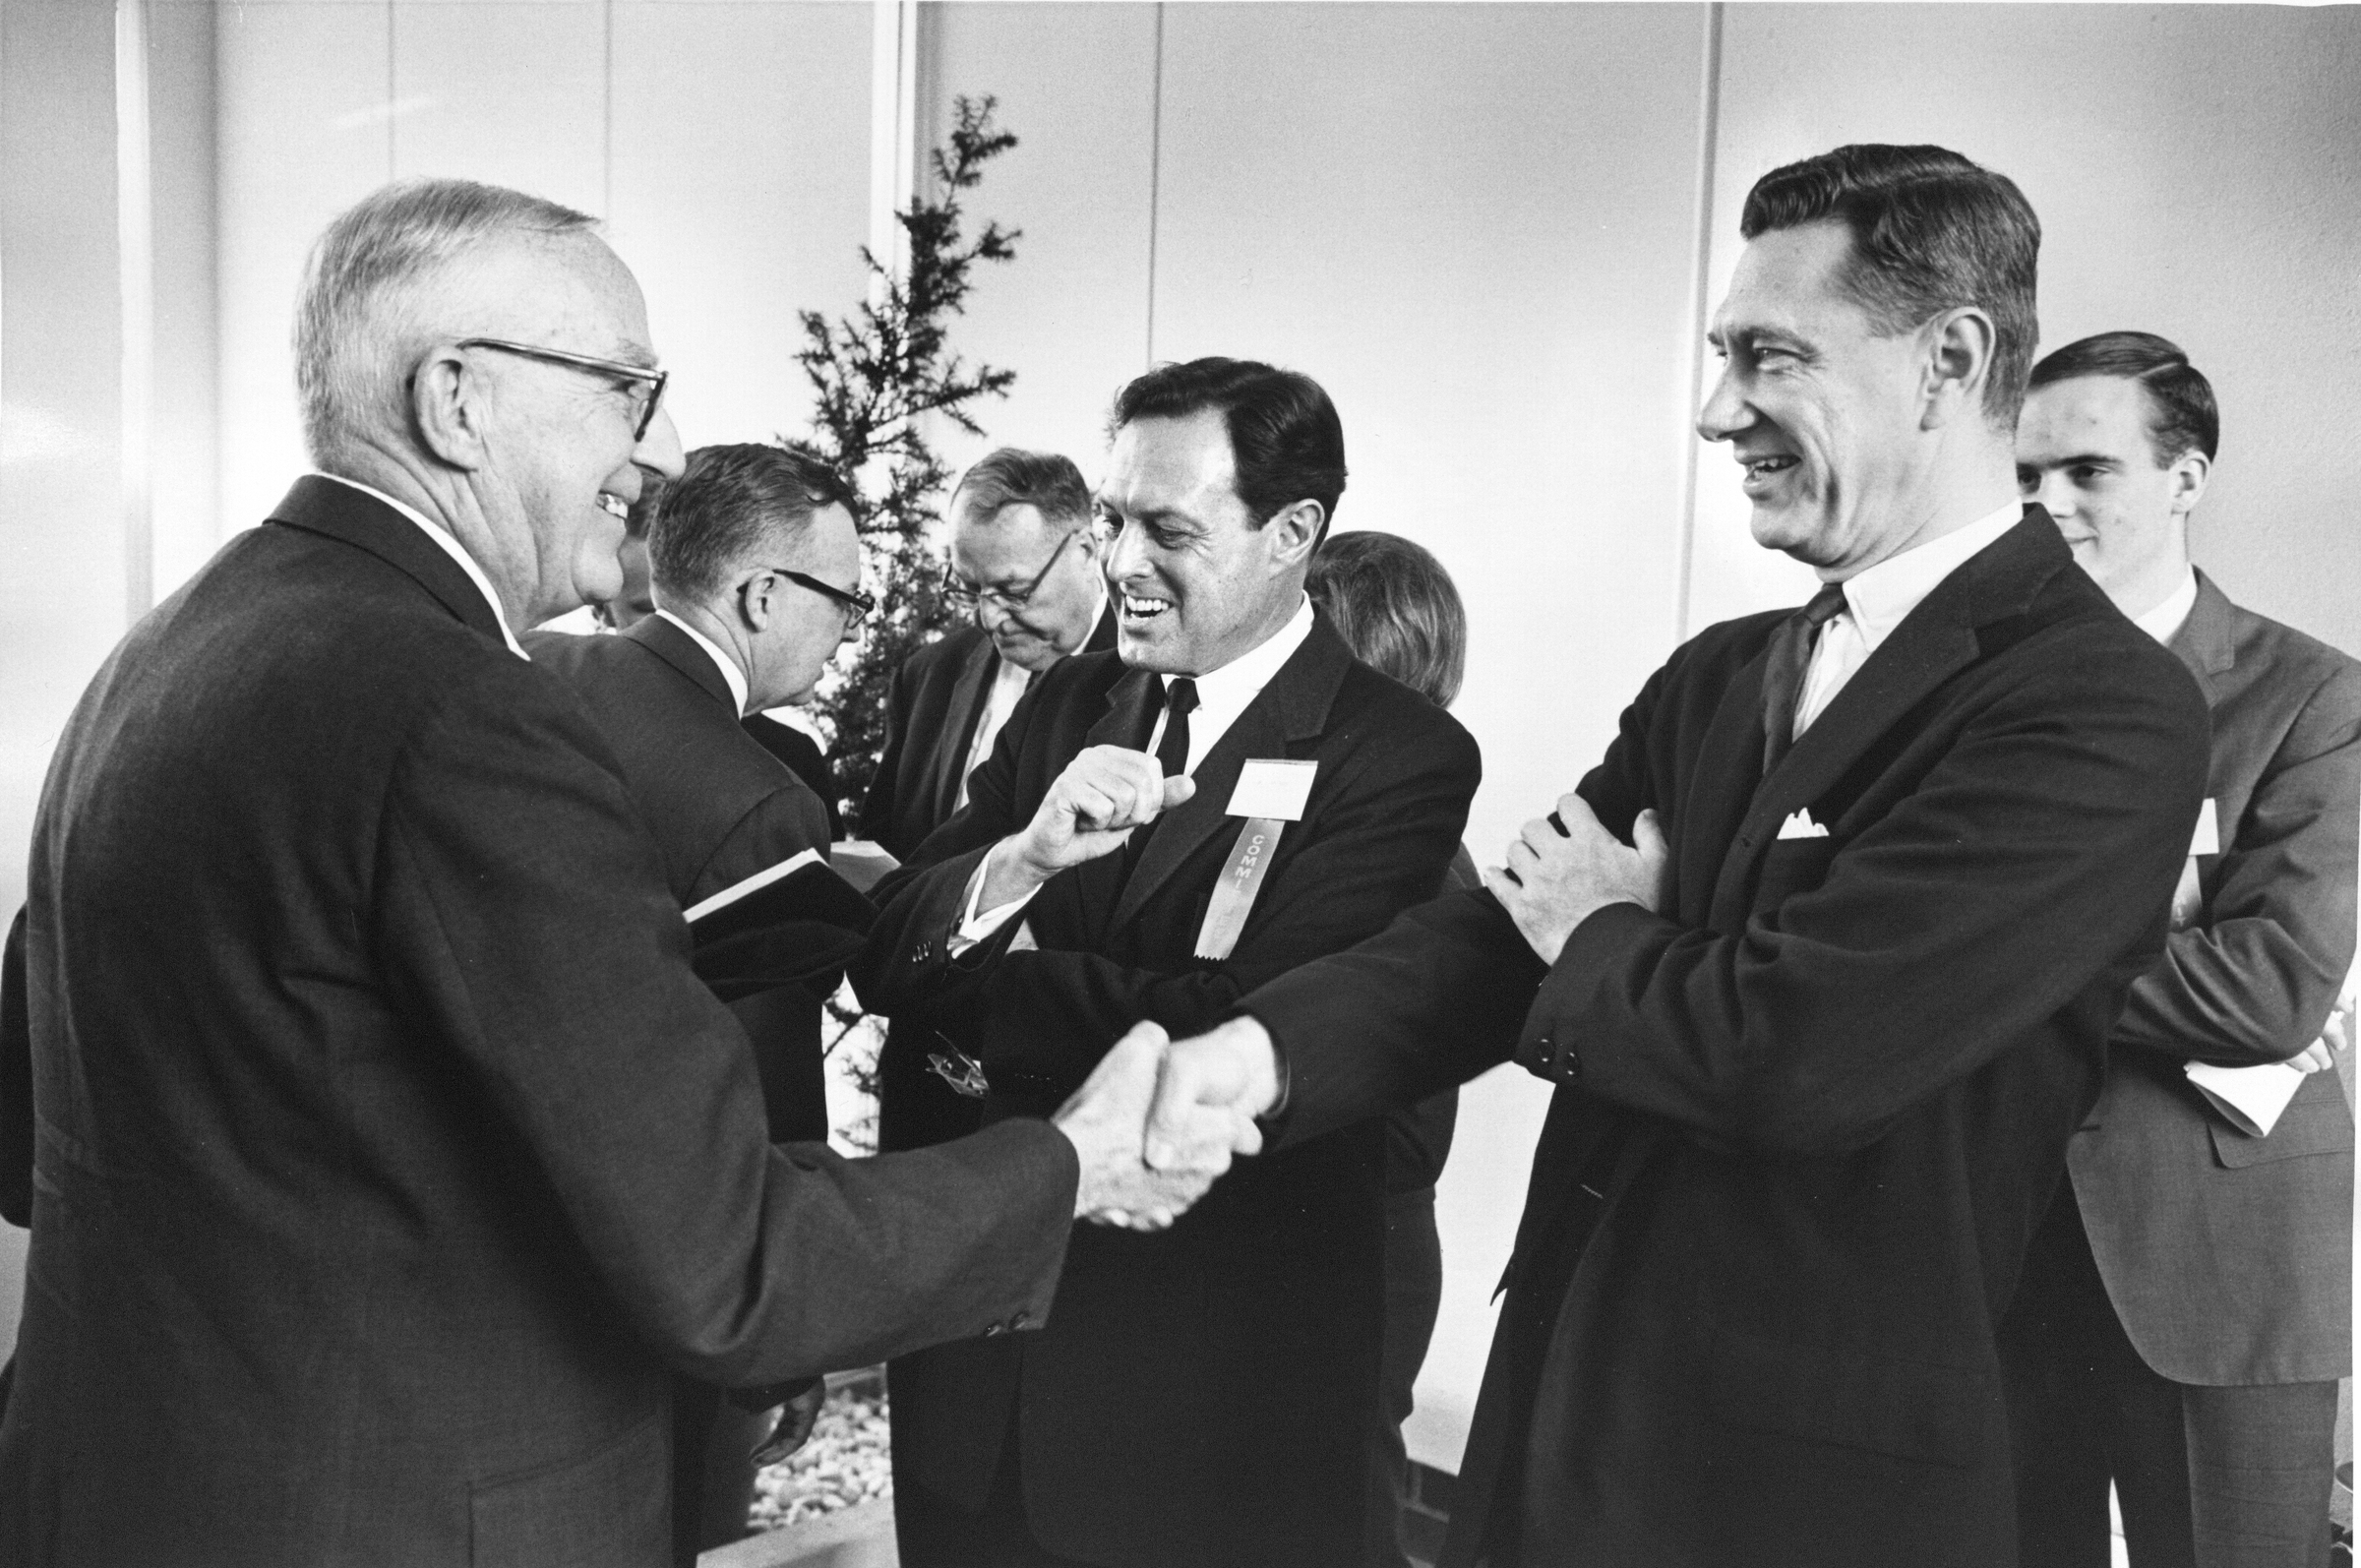 Reception, George Mason College Dedication, Fairfax, Va., November 12, 1964.